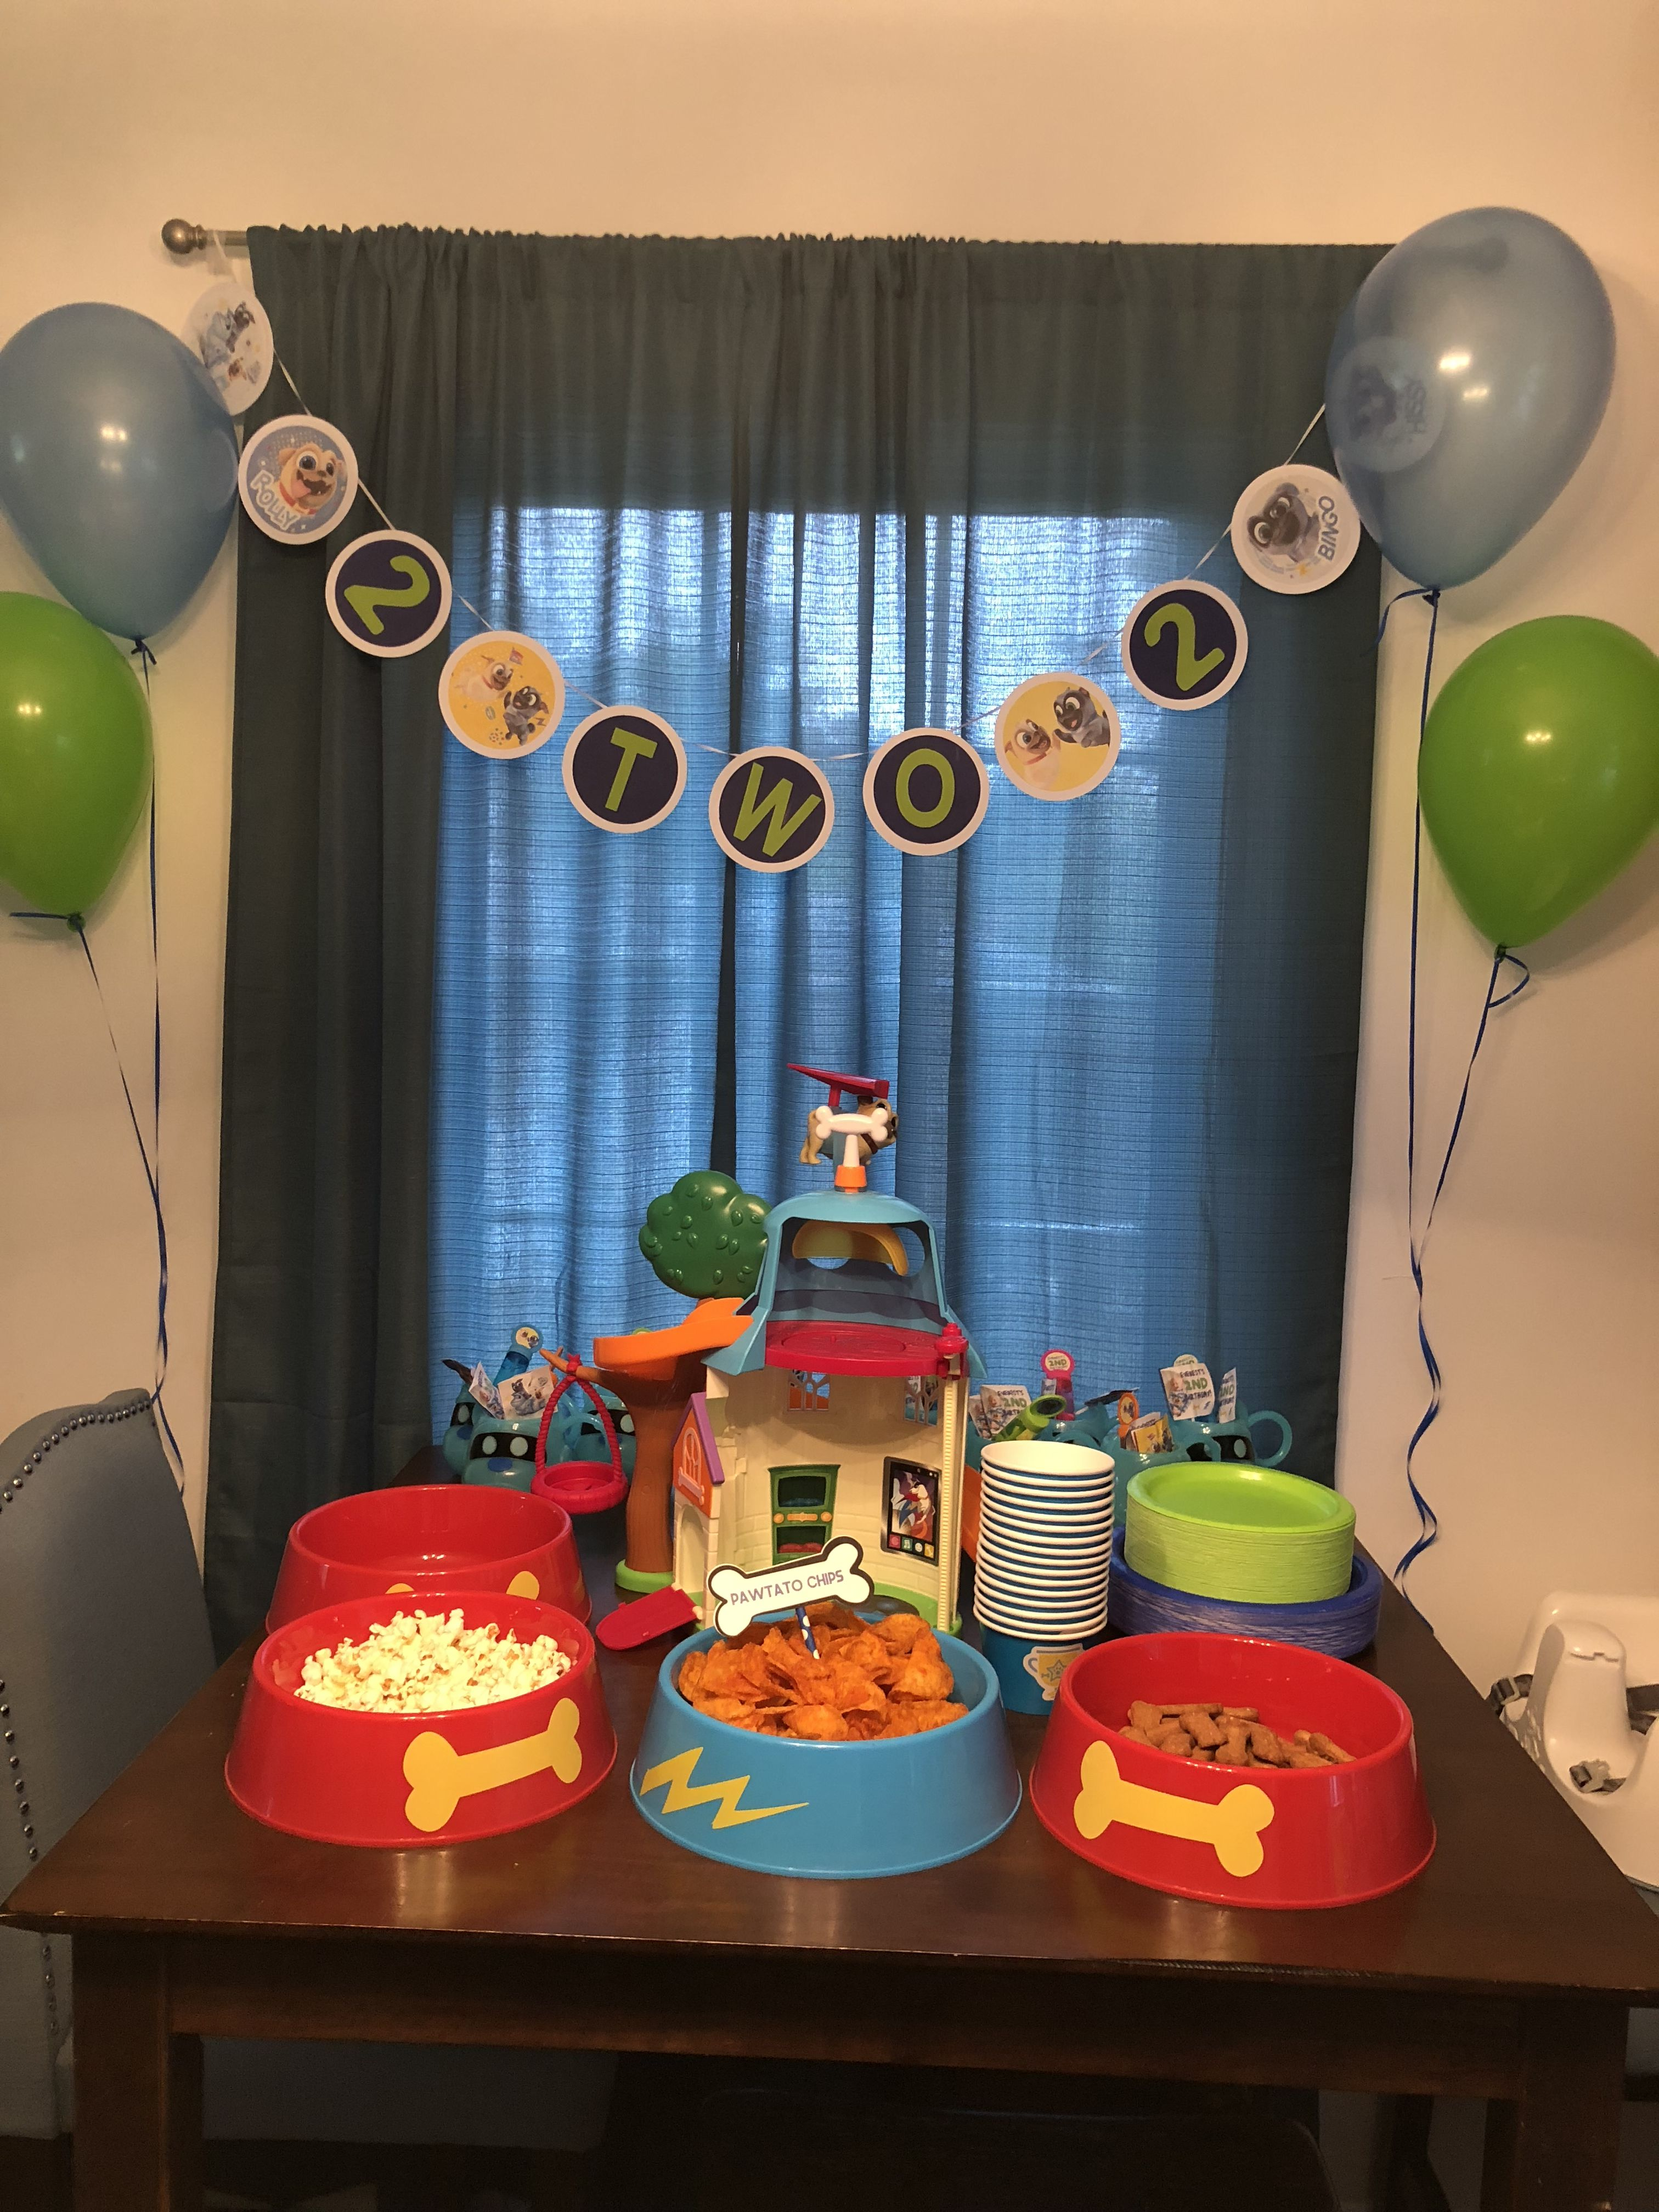 Puppy Dog Pals Birthday Party Decor Puppy Birthday Parties Dog